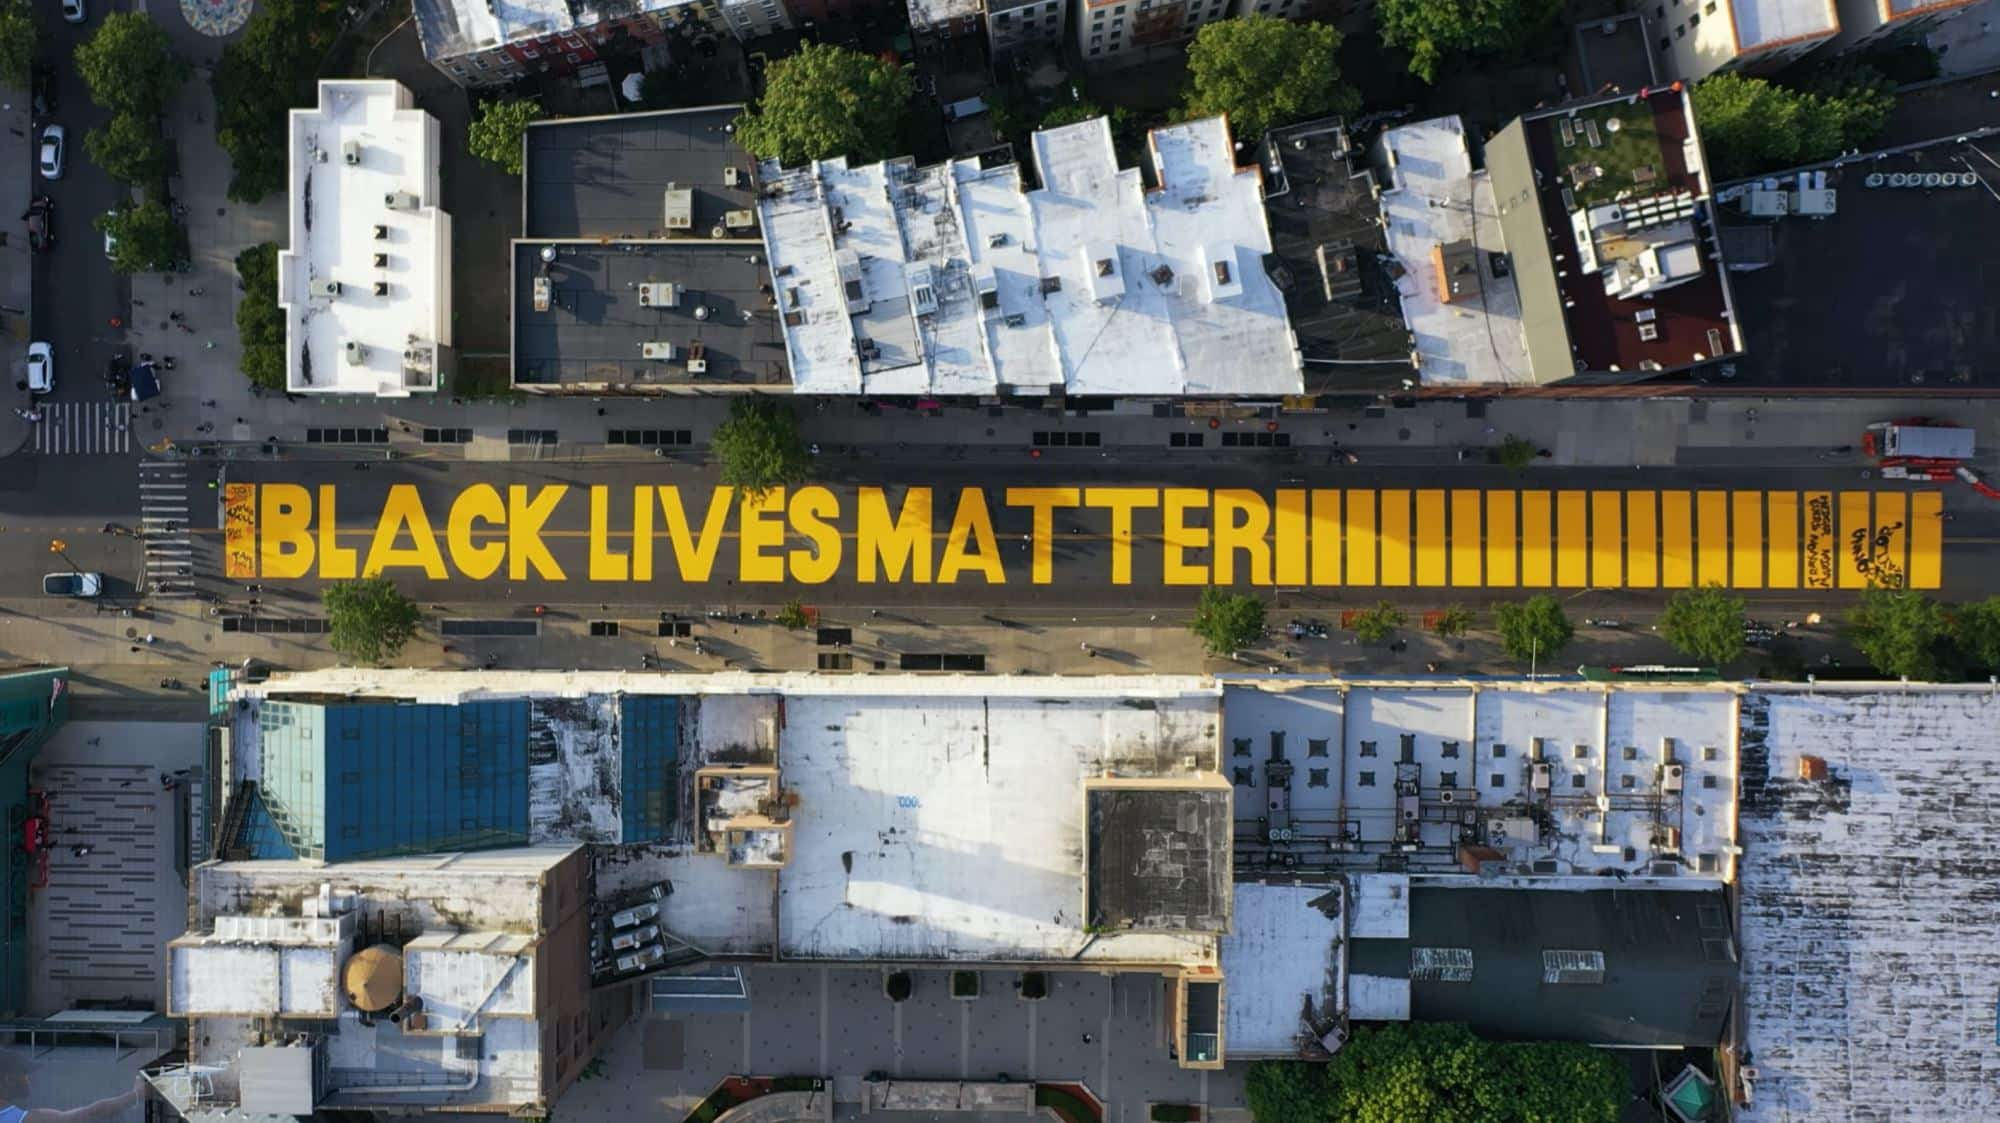 Drone video captures Black Lives Matter in Brooklyn, NY